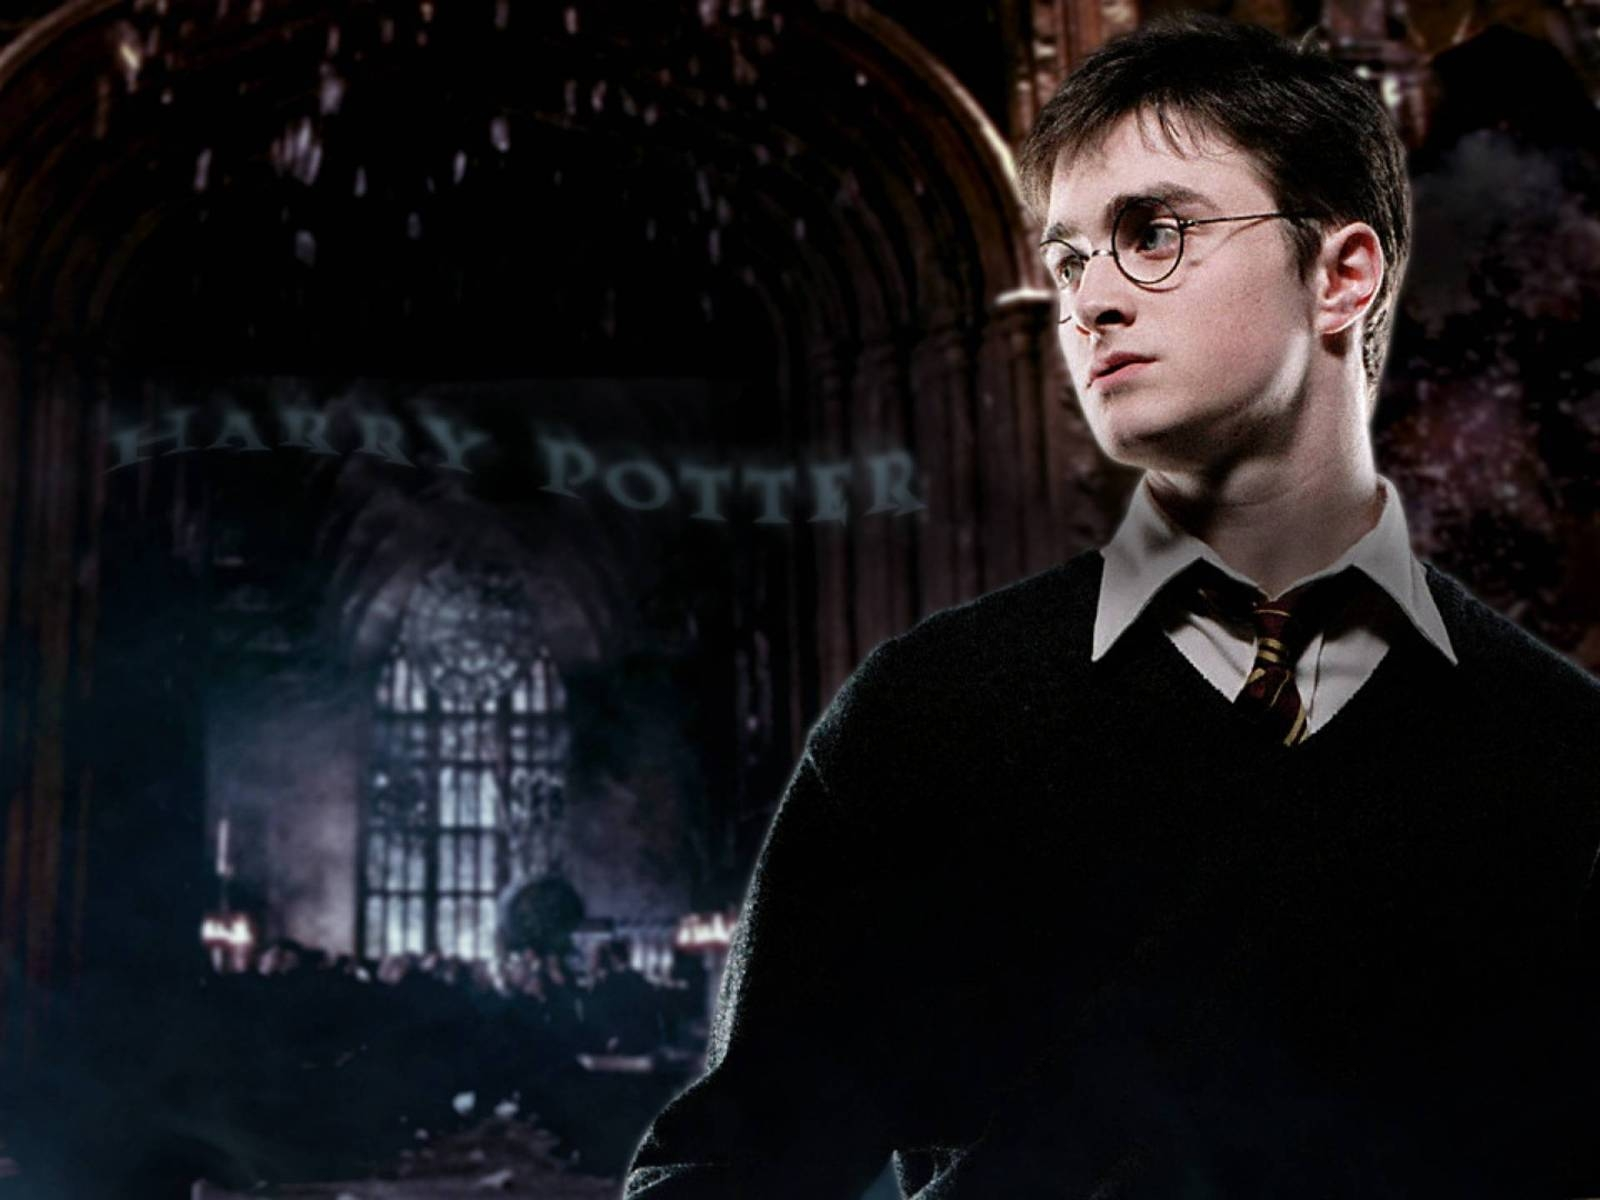 Harry Potter Daniel Radcliffe for 1600 x 1200 resolution